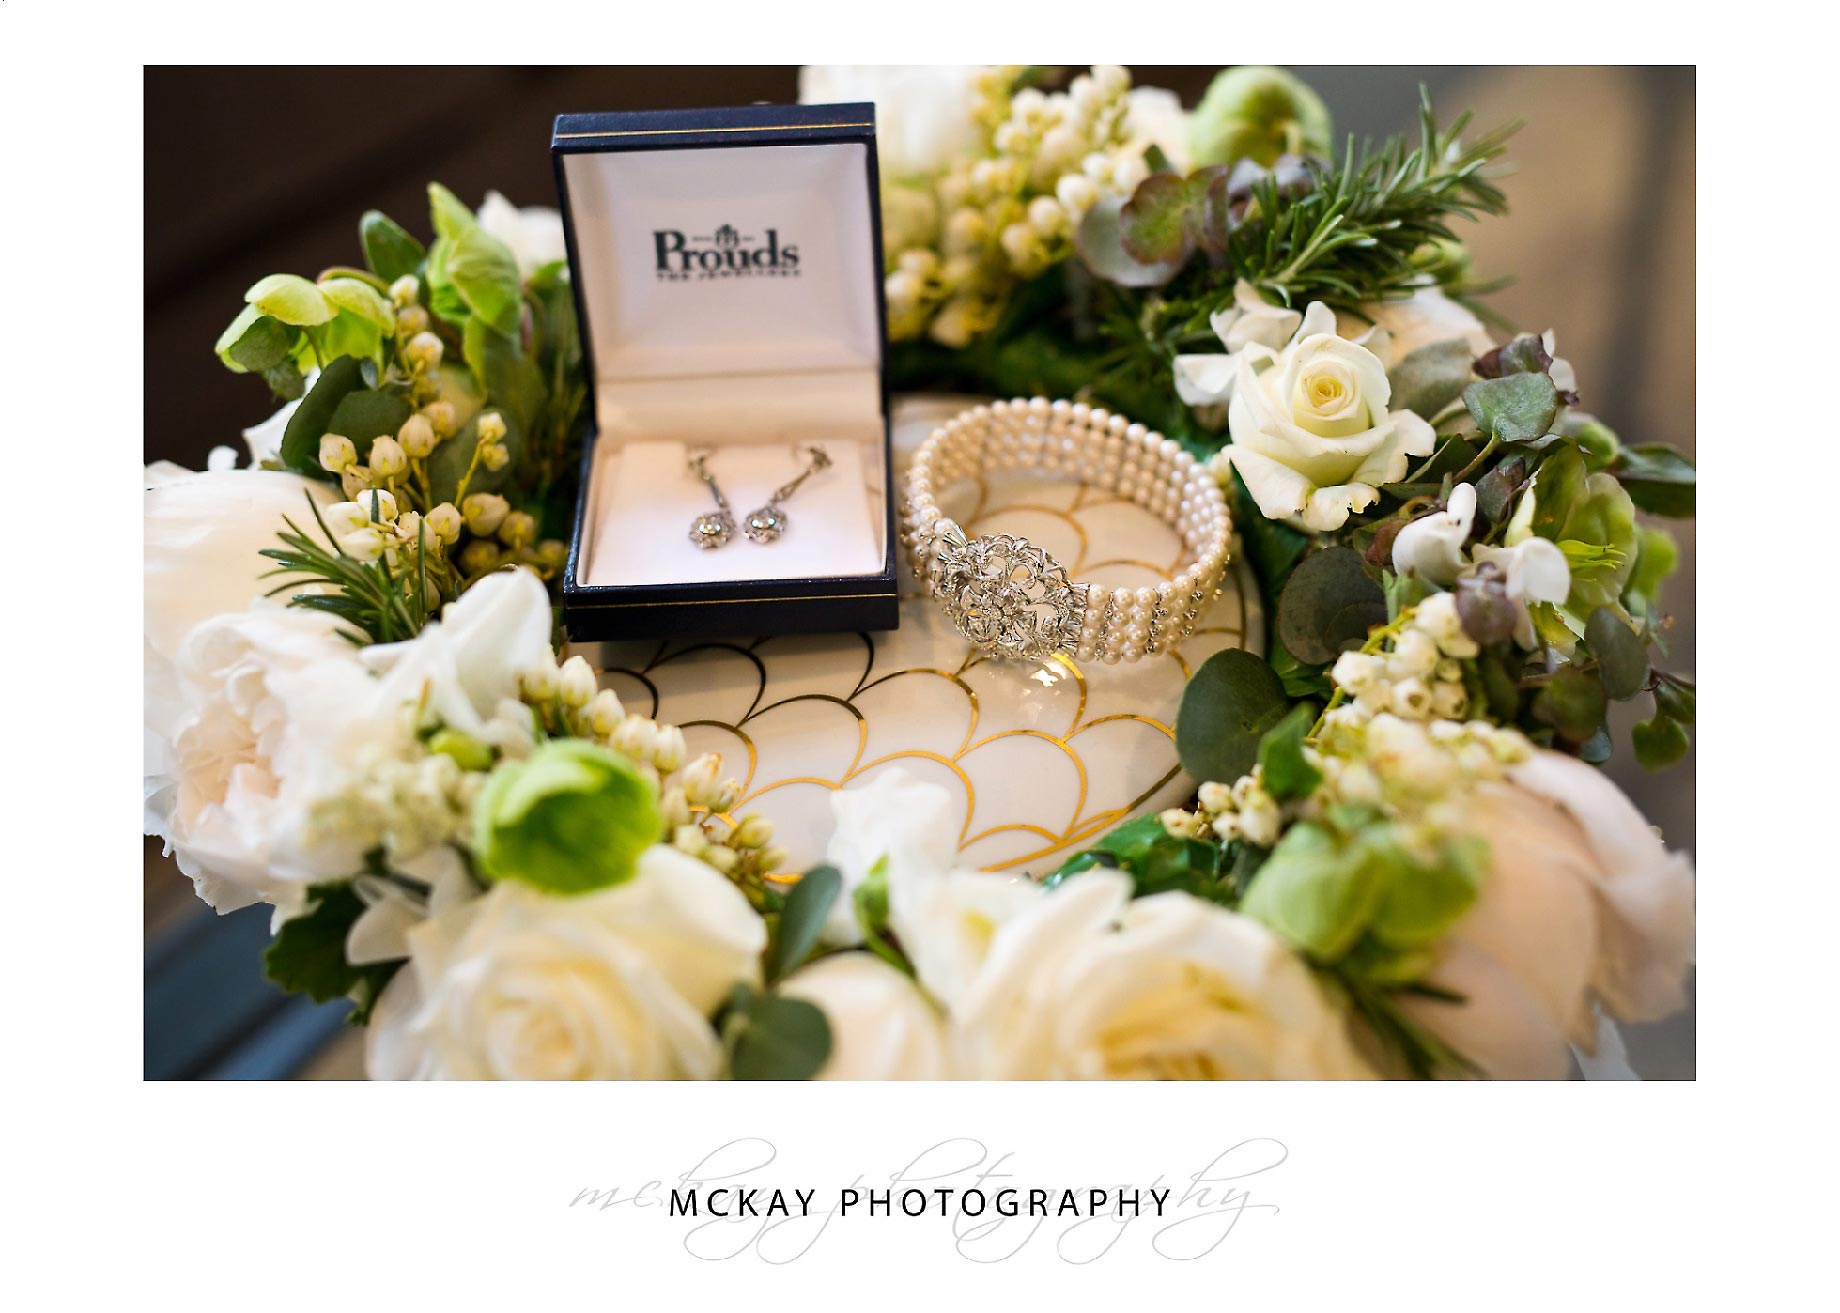 Bride flower and jewellery detail photo